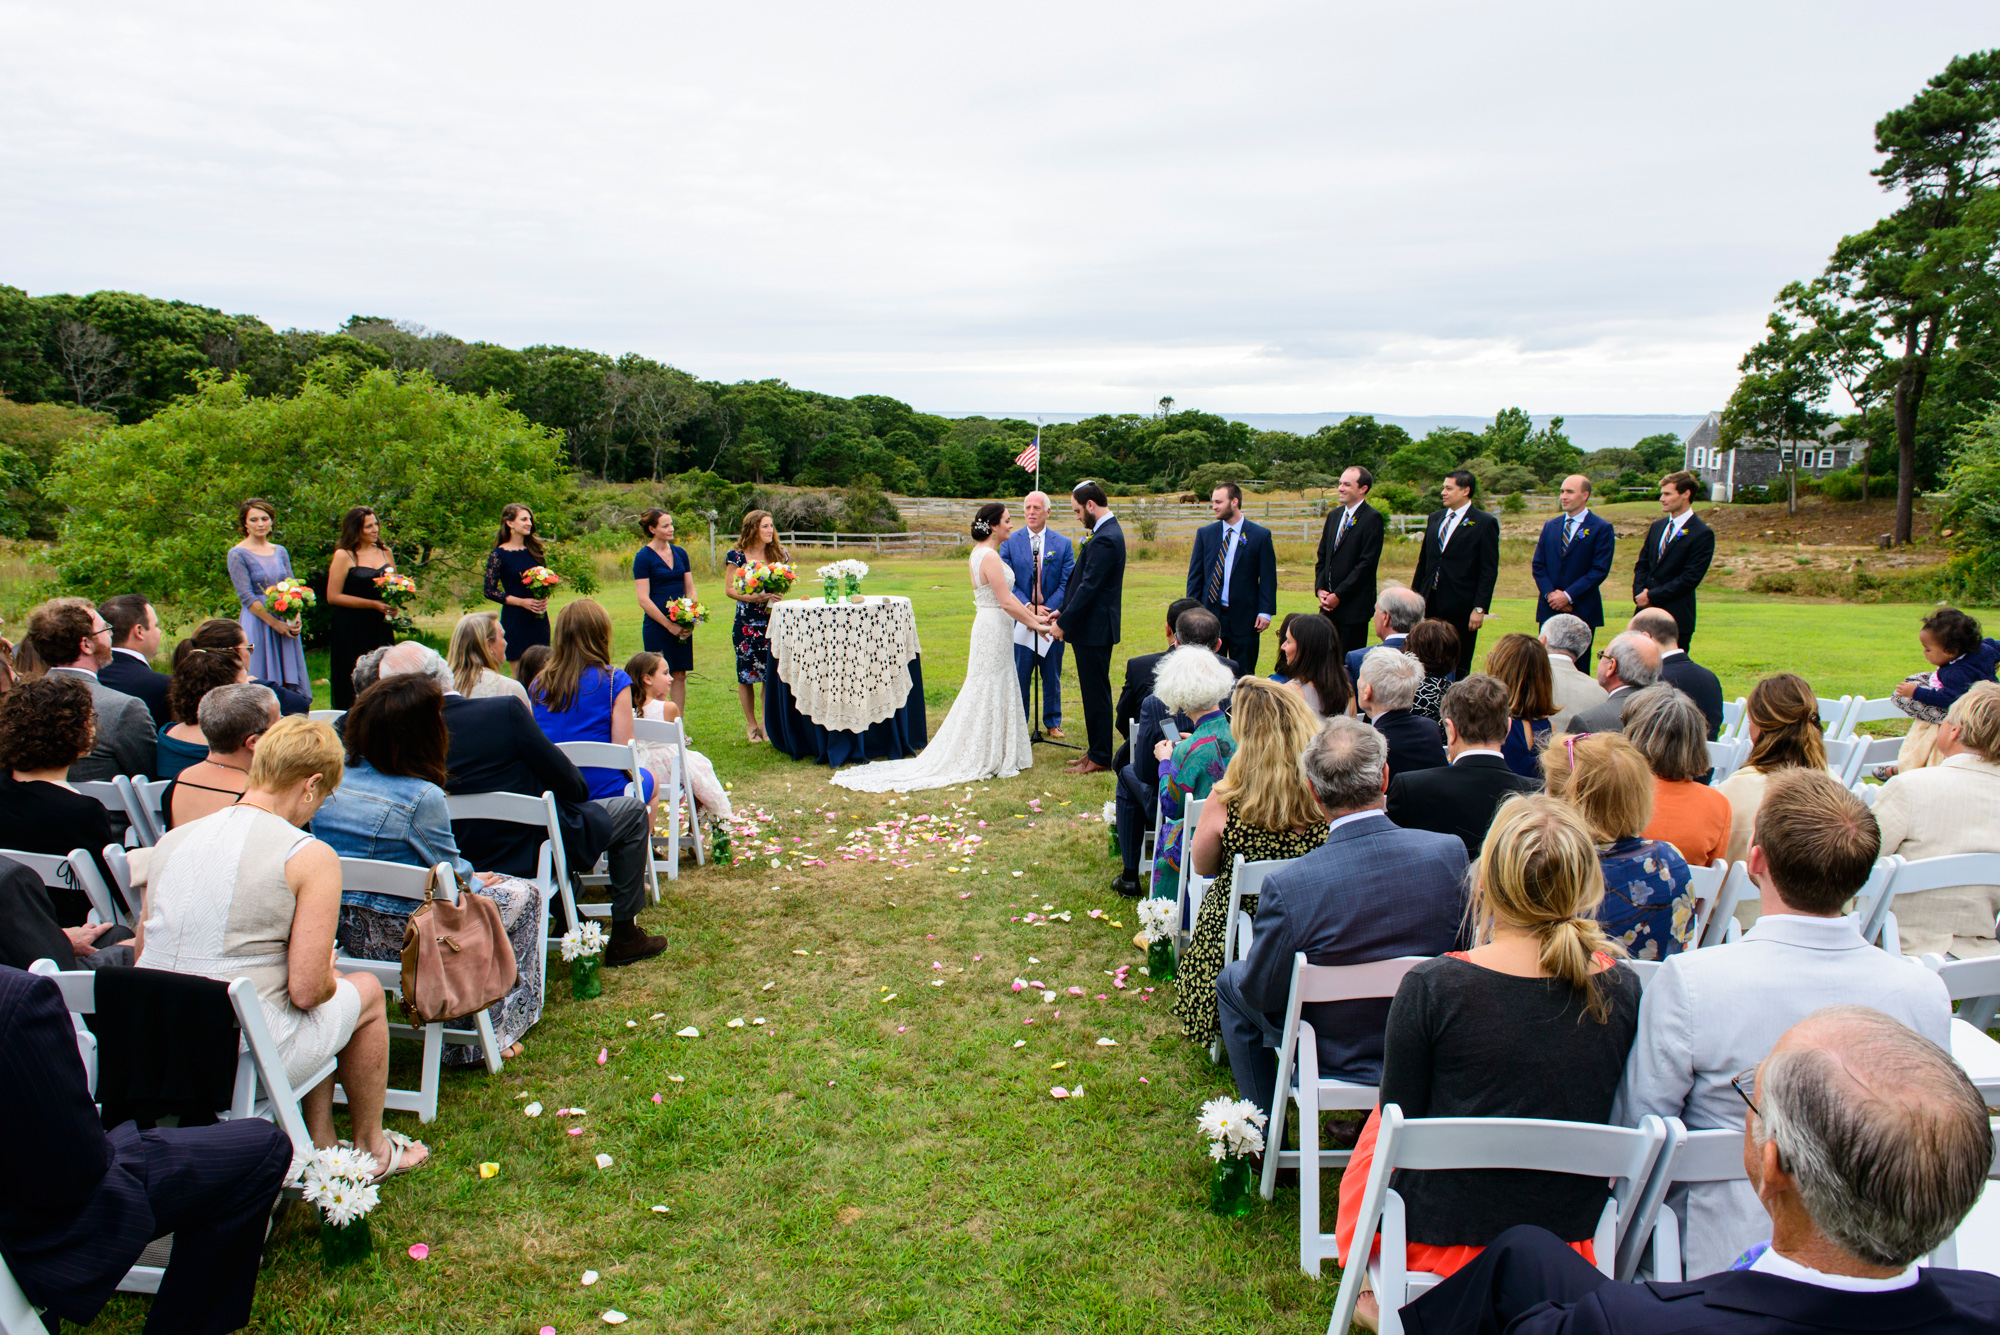 A wedding ceremony in a field at The Beach Plum Inn & Restaurant photo by David Welch Photography